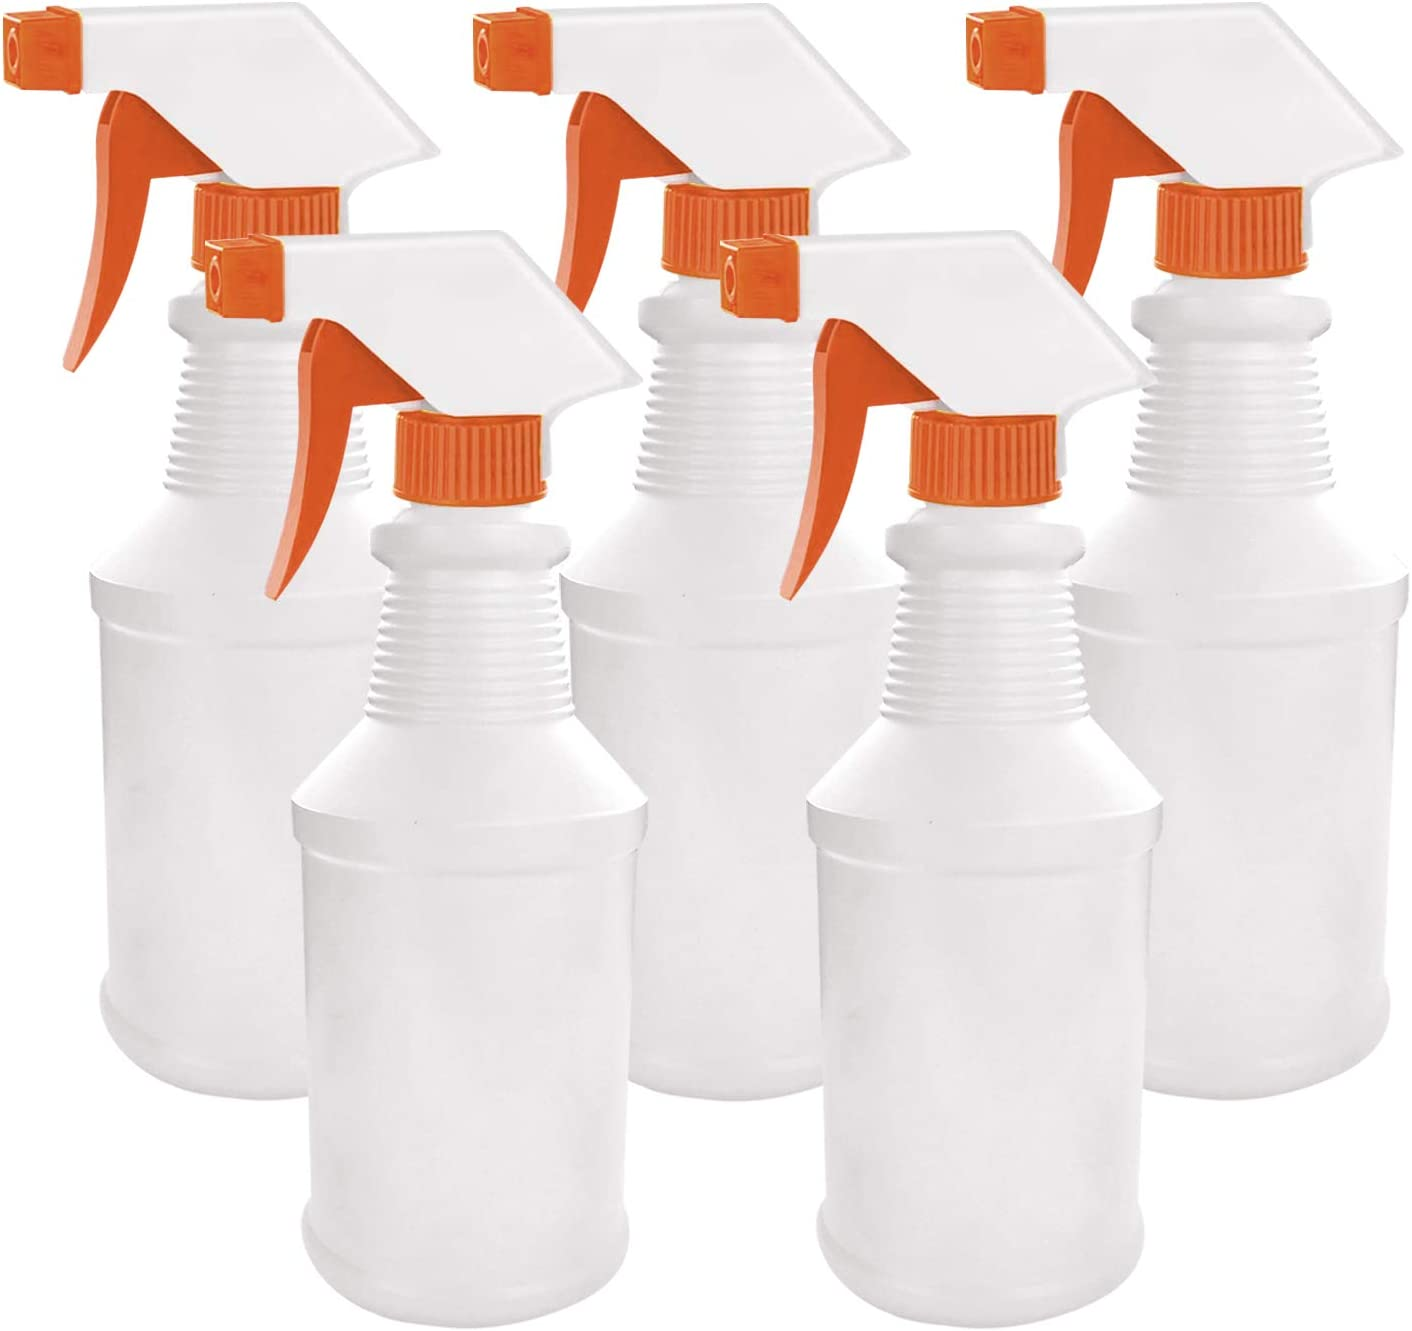 Plastic Spray Bottle with Sprayers 5 16 Pack Cleaning for Oz mart All stores are sold